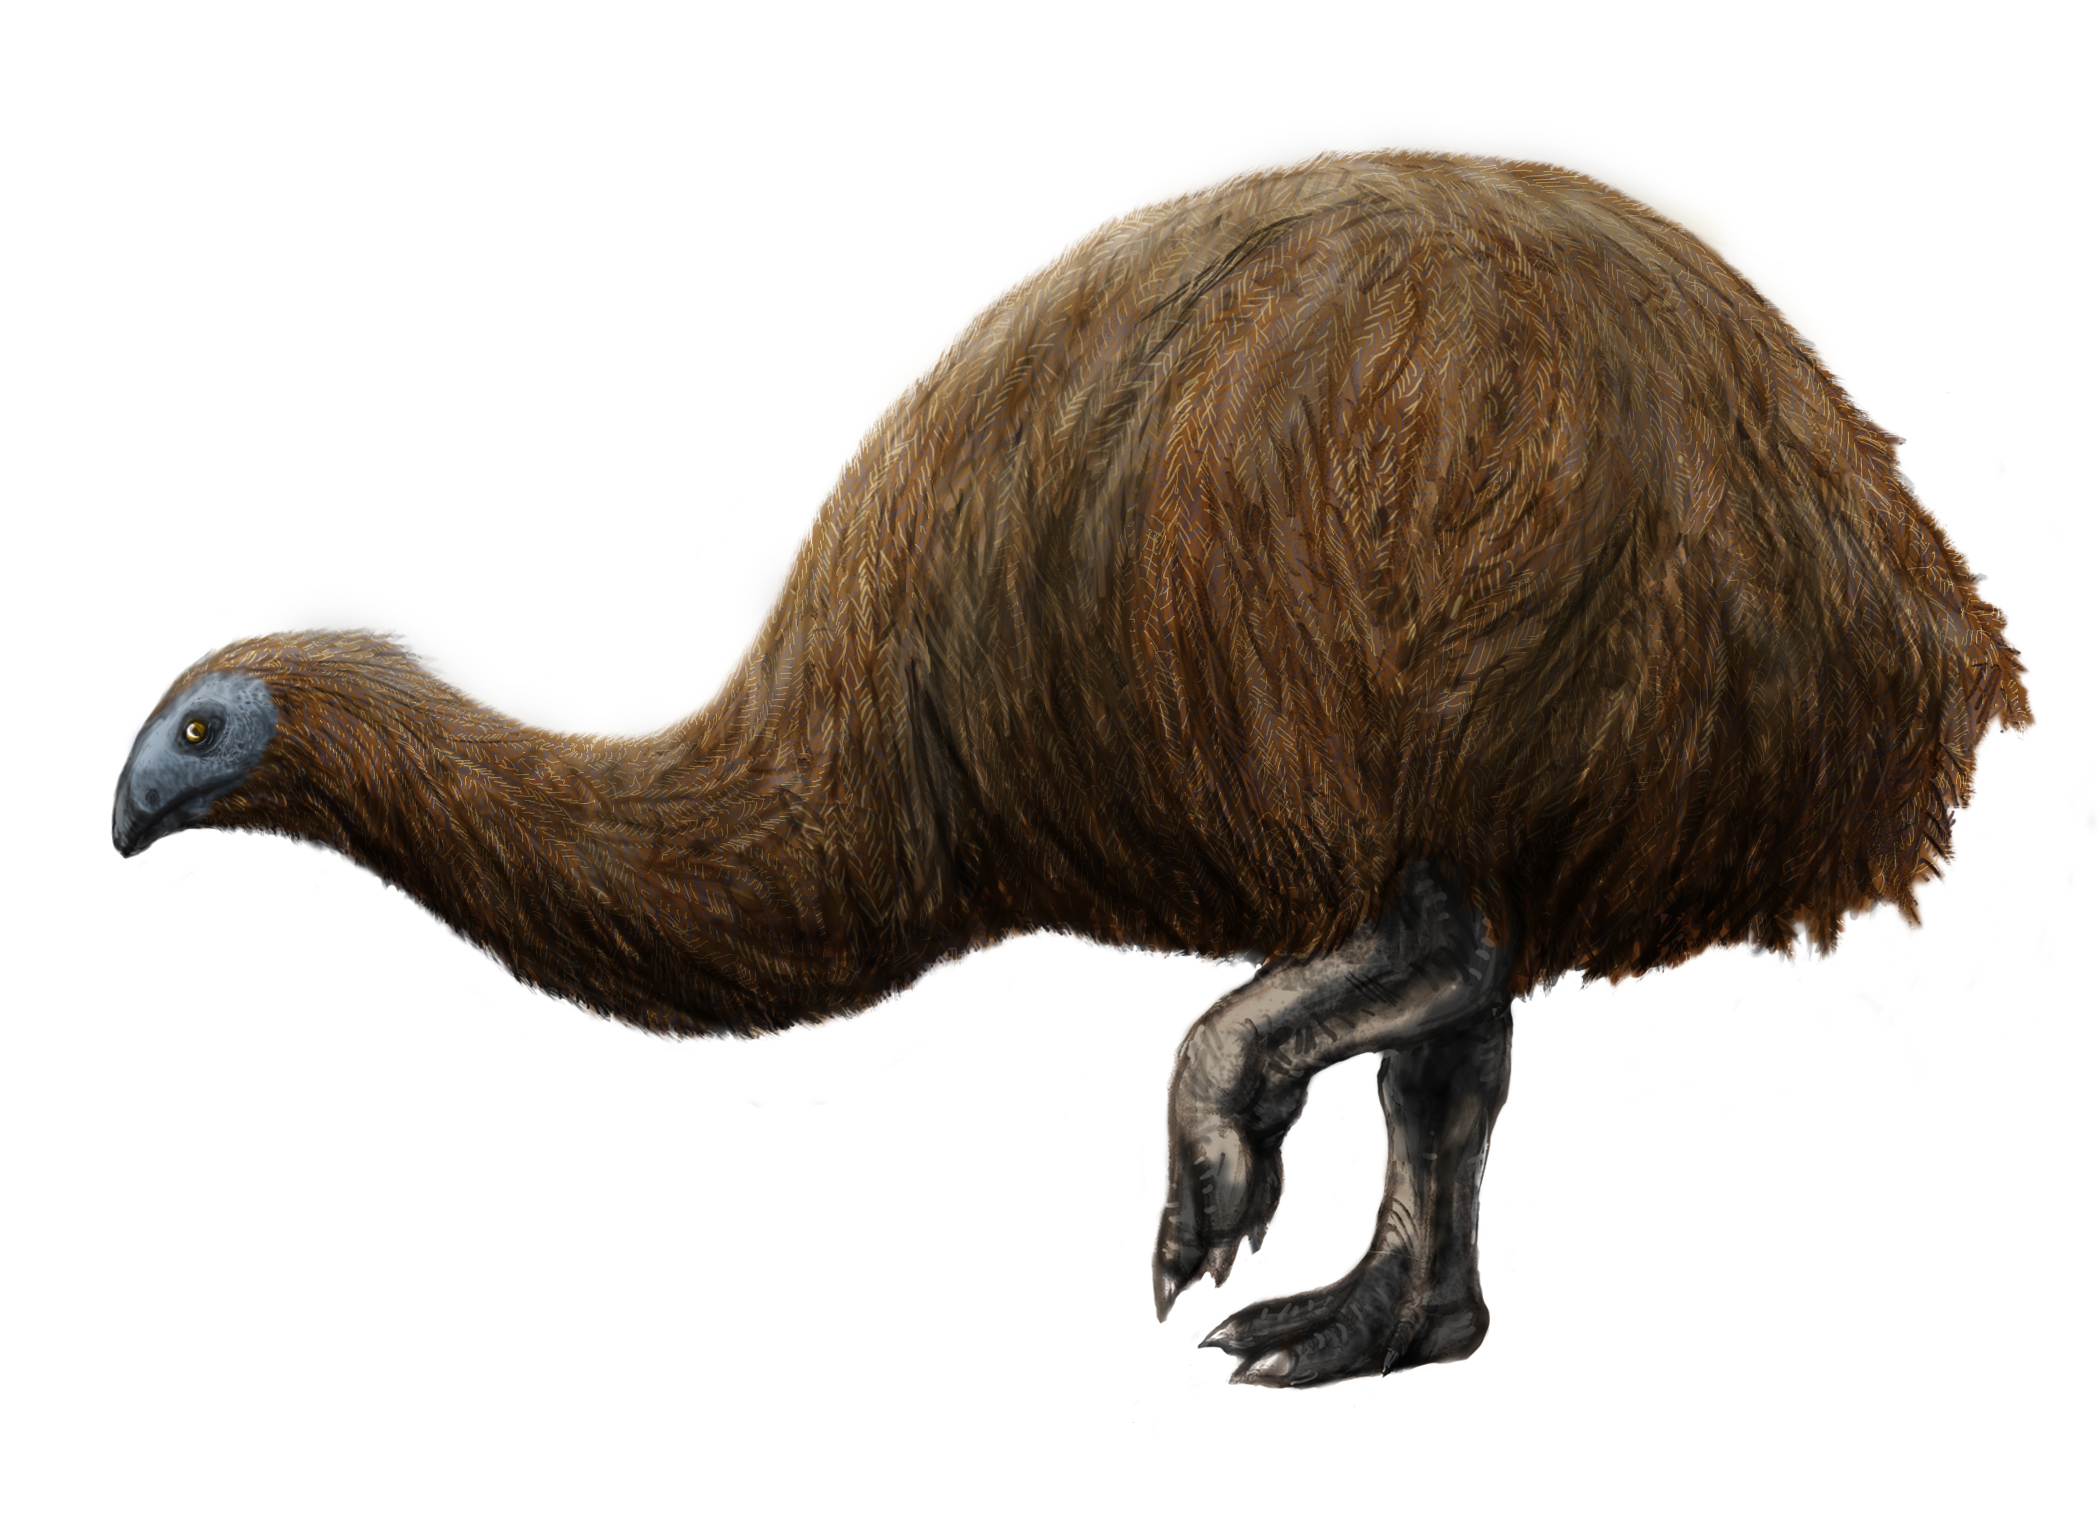 Broad-billed Moa clipart #19, Download drawings